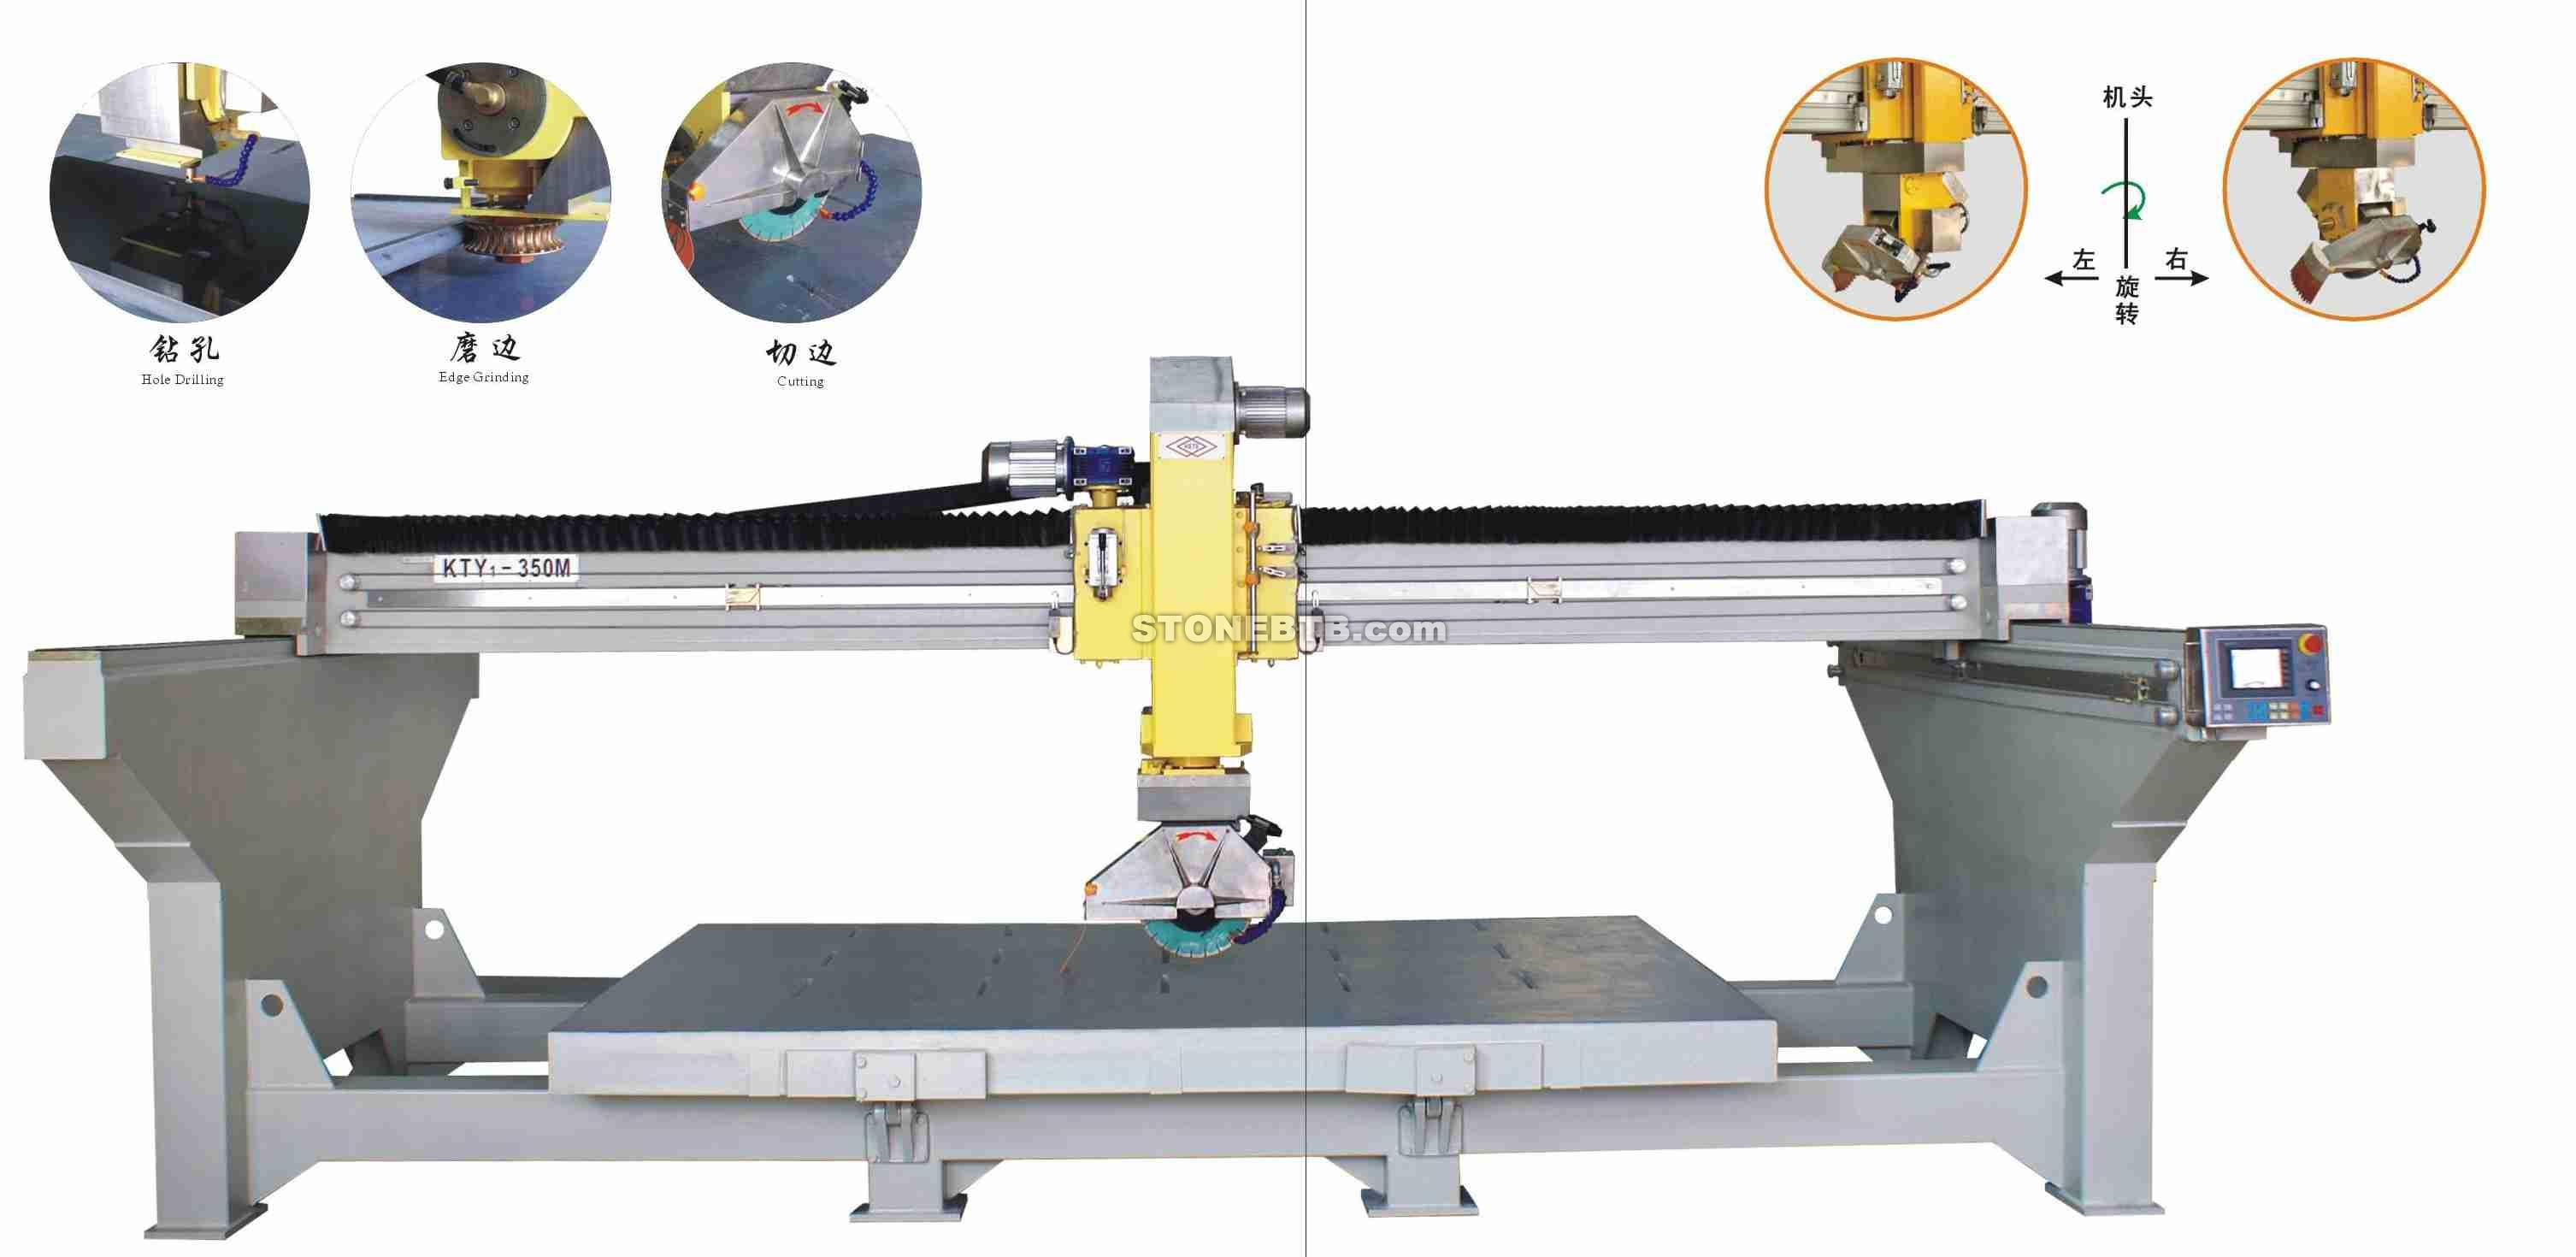 KTY1 350M WHOLE BRADGE AUTOMATIC GRINDING AND SAWING MACHINE